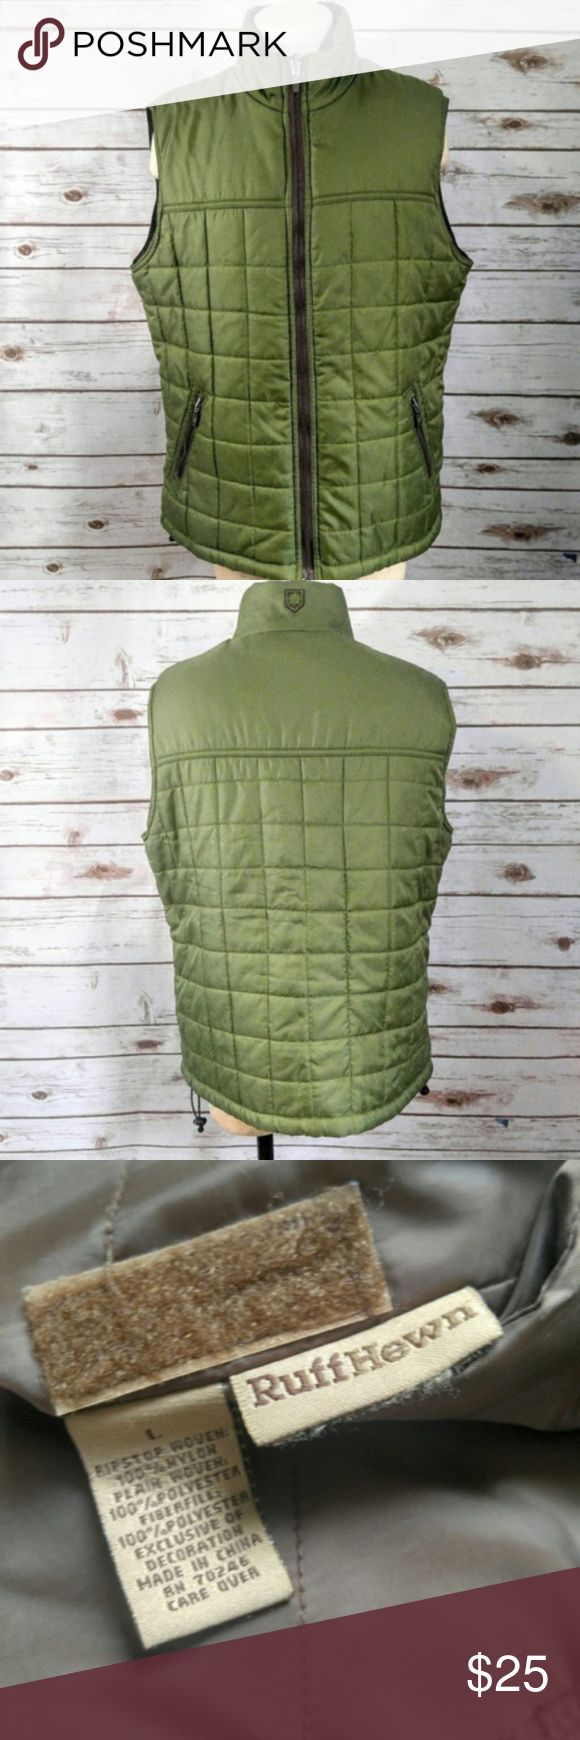 """Ruff Hewn Reversible Brown and Green Quilted Vest Ruff Hewn Reversible Brown and Green Quilted Vest Materials: Polyester Size: Large Measurements Laid Flat Bust:  21"""" Length: 24"""" Feel free to ask questions, I'll reply within 24 hours. Ruff Hewn Jackets & Coats Vests"""